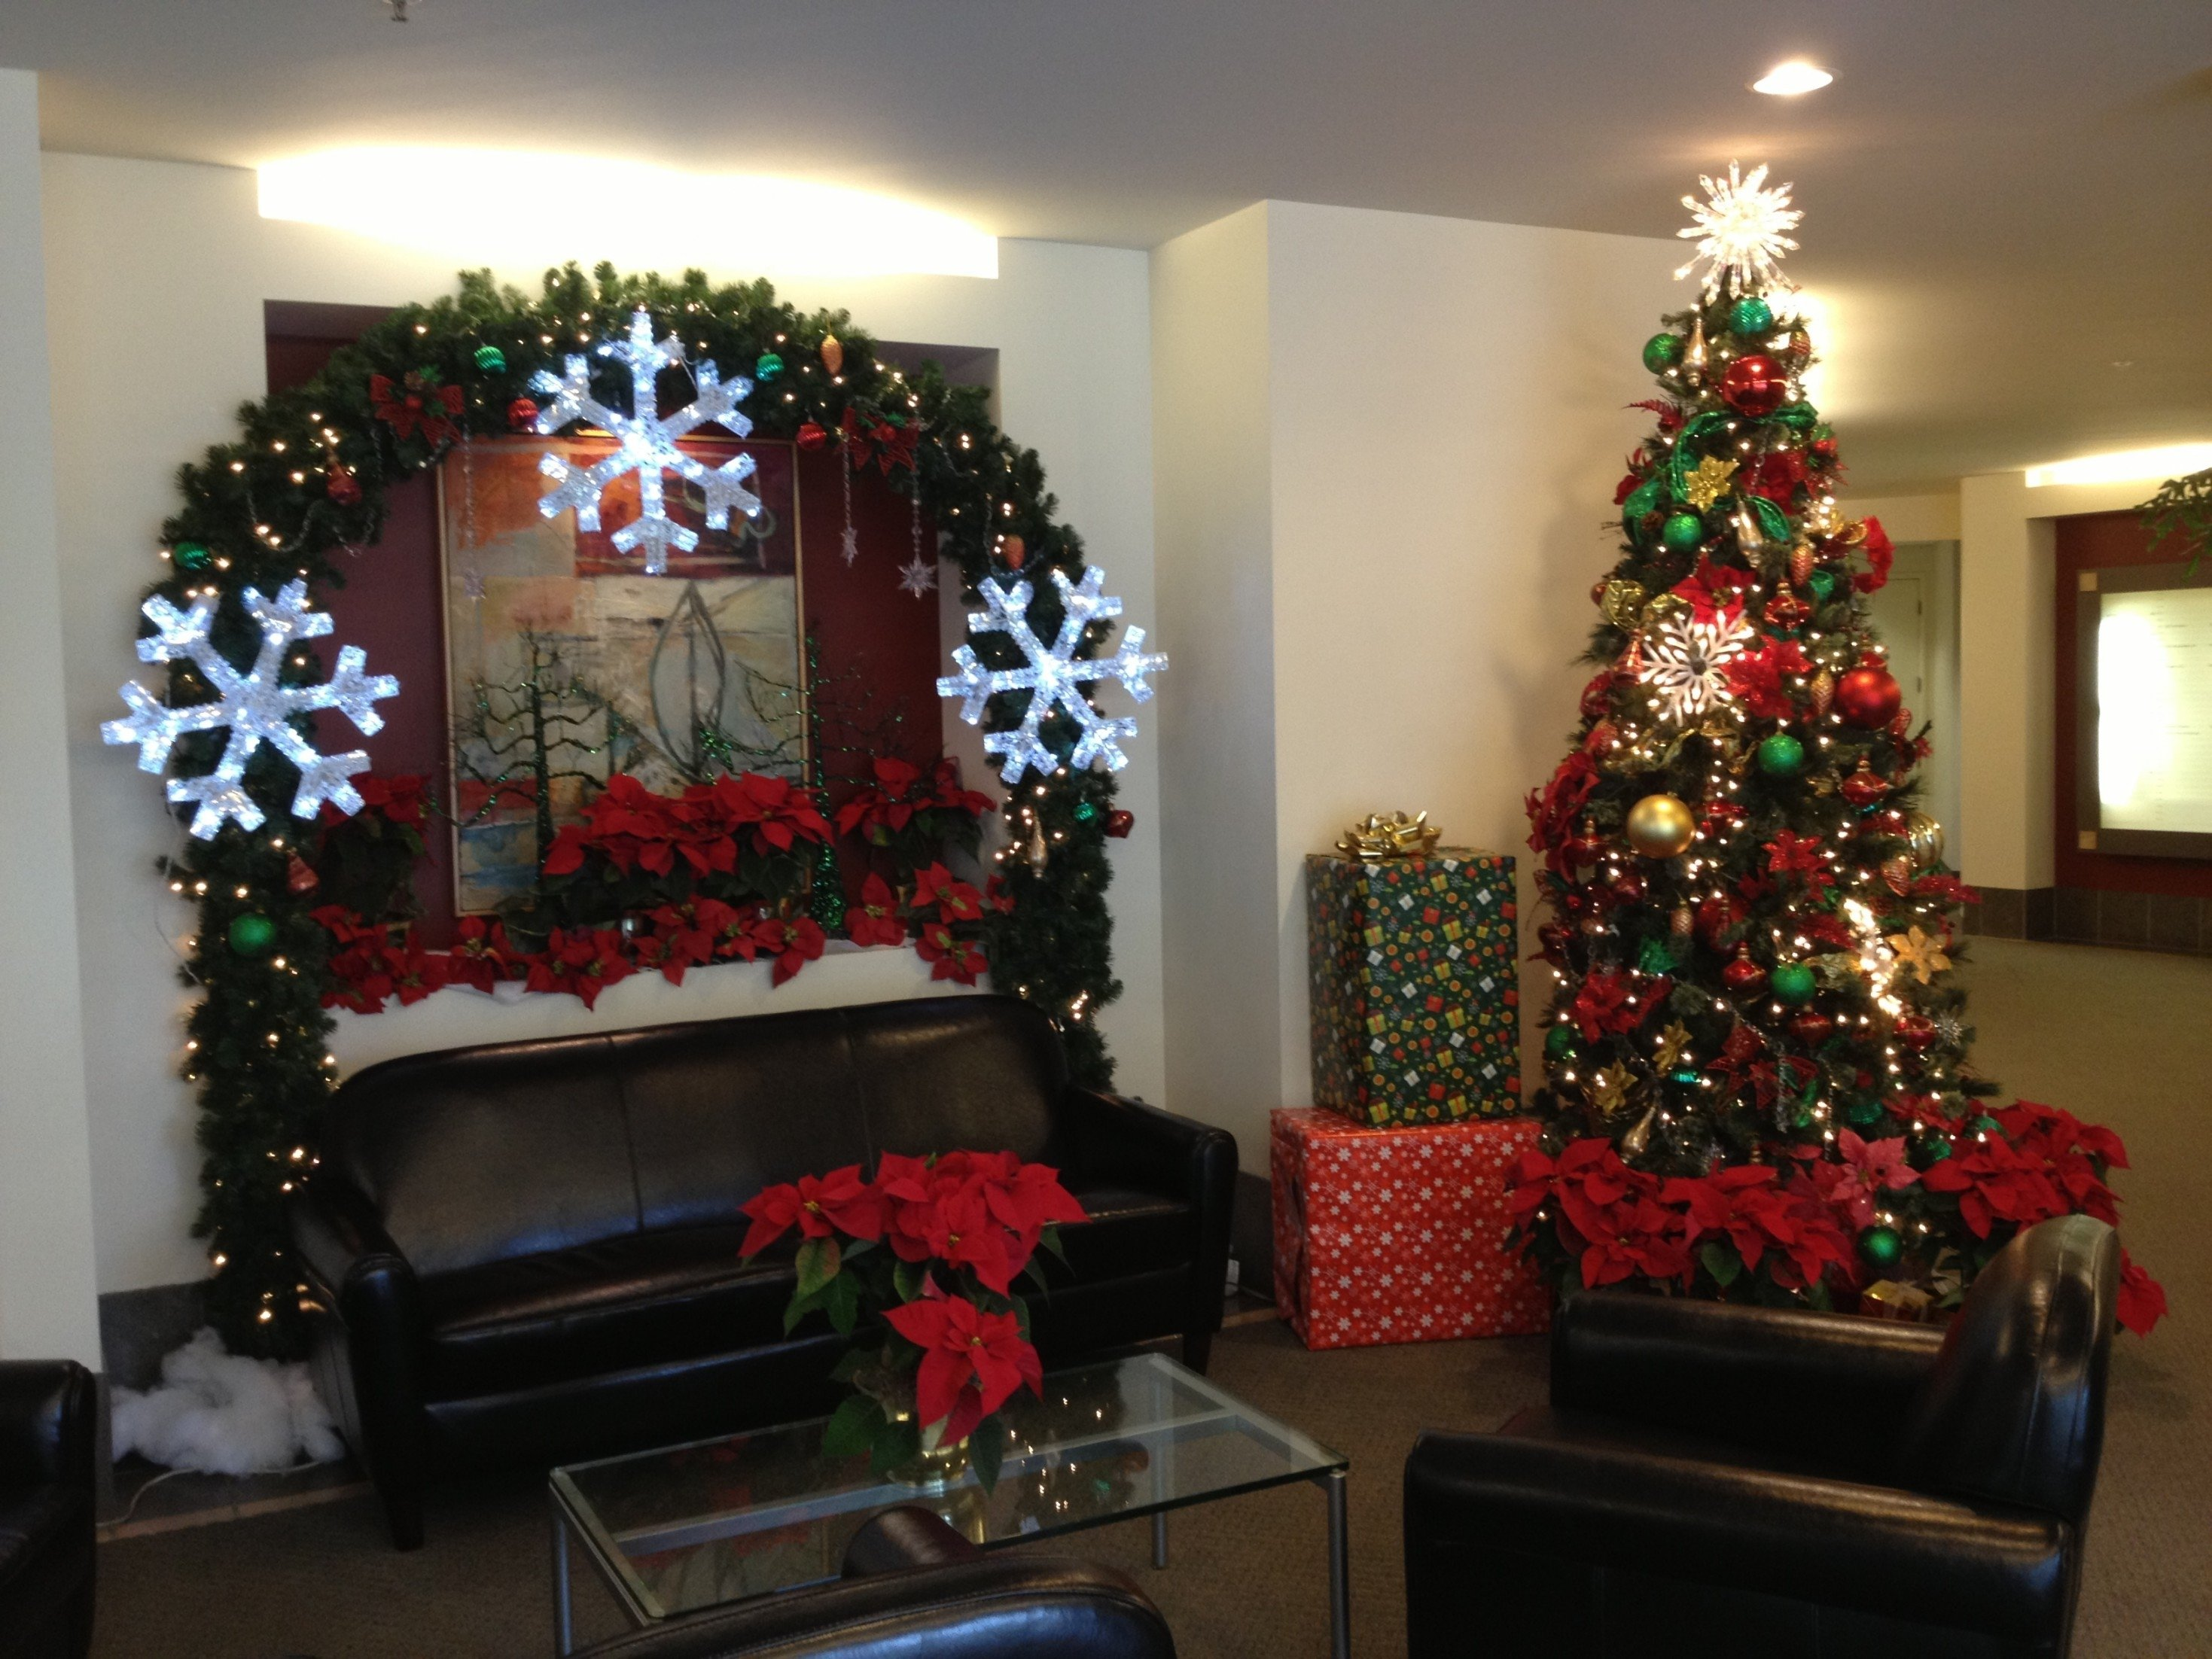 10 Pretty Christmas Decorations Ideas For Living Room living room christmas decorating ideas your for formal and a small 2021